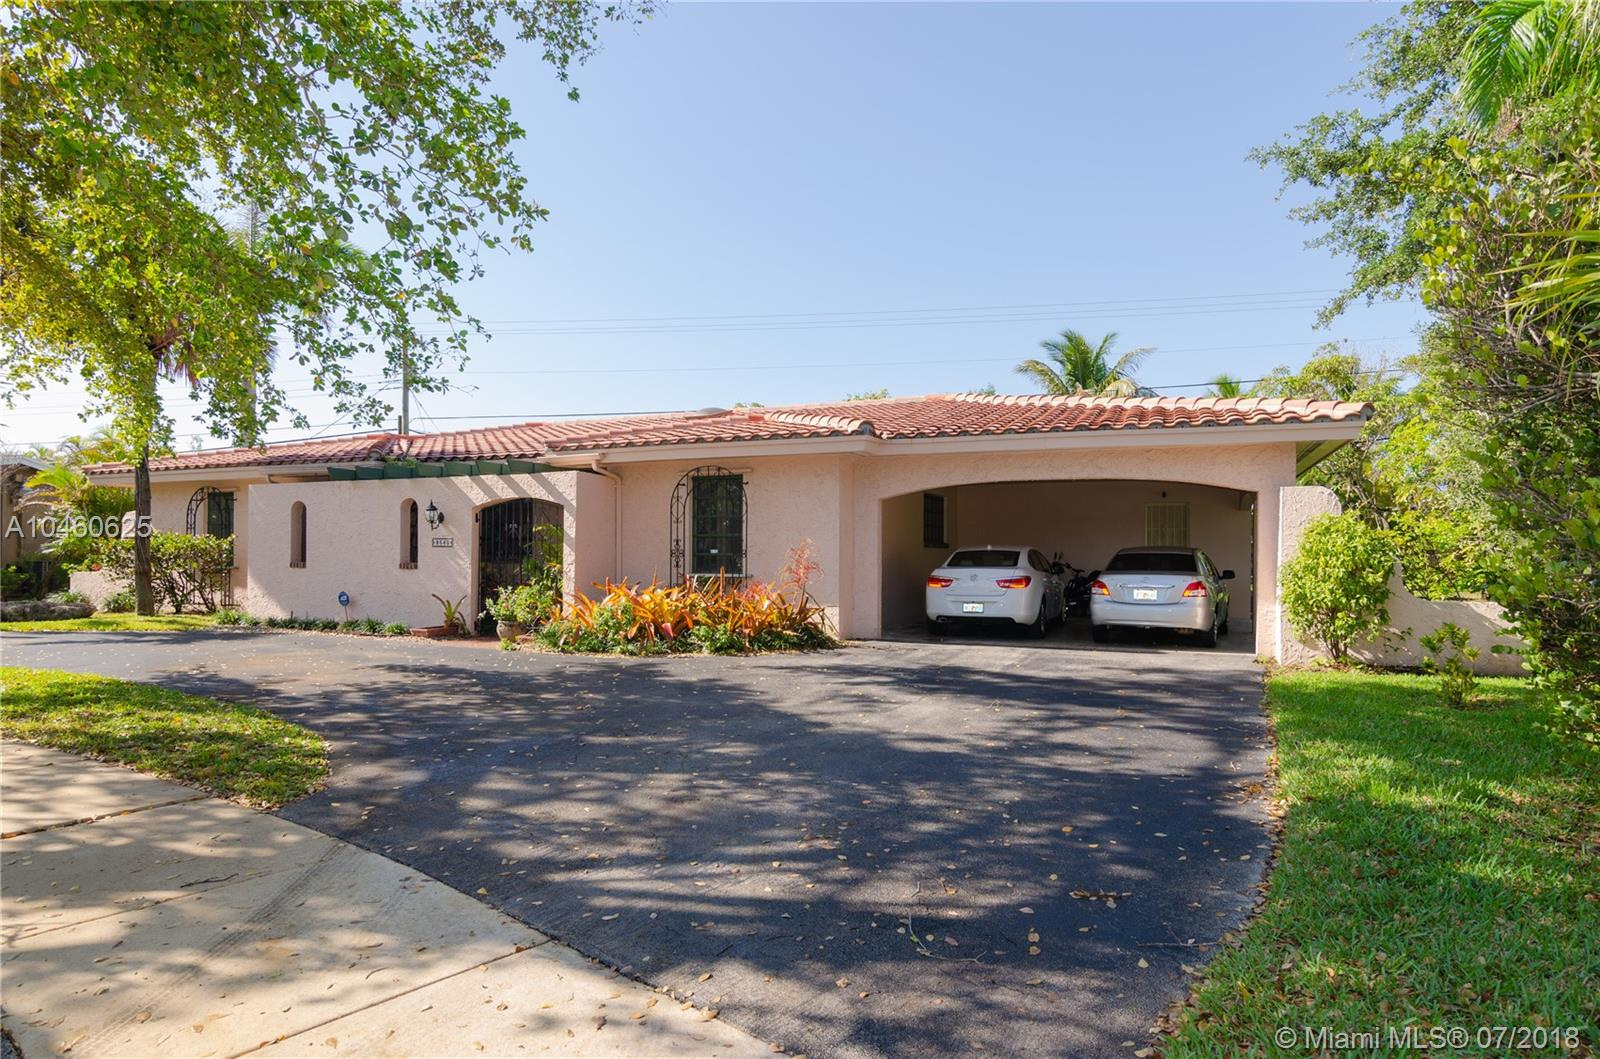 8640 Sw 87th Ter, Miami FL, 33143